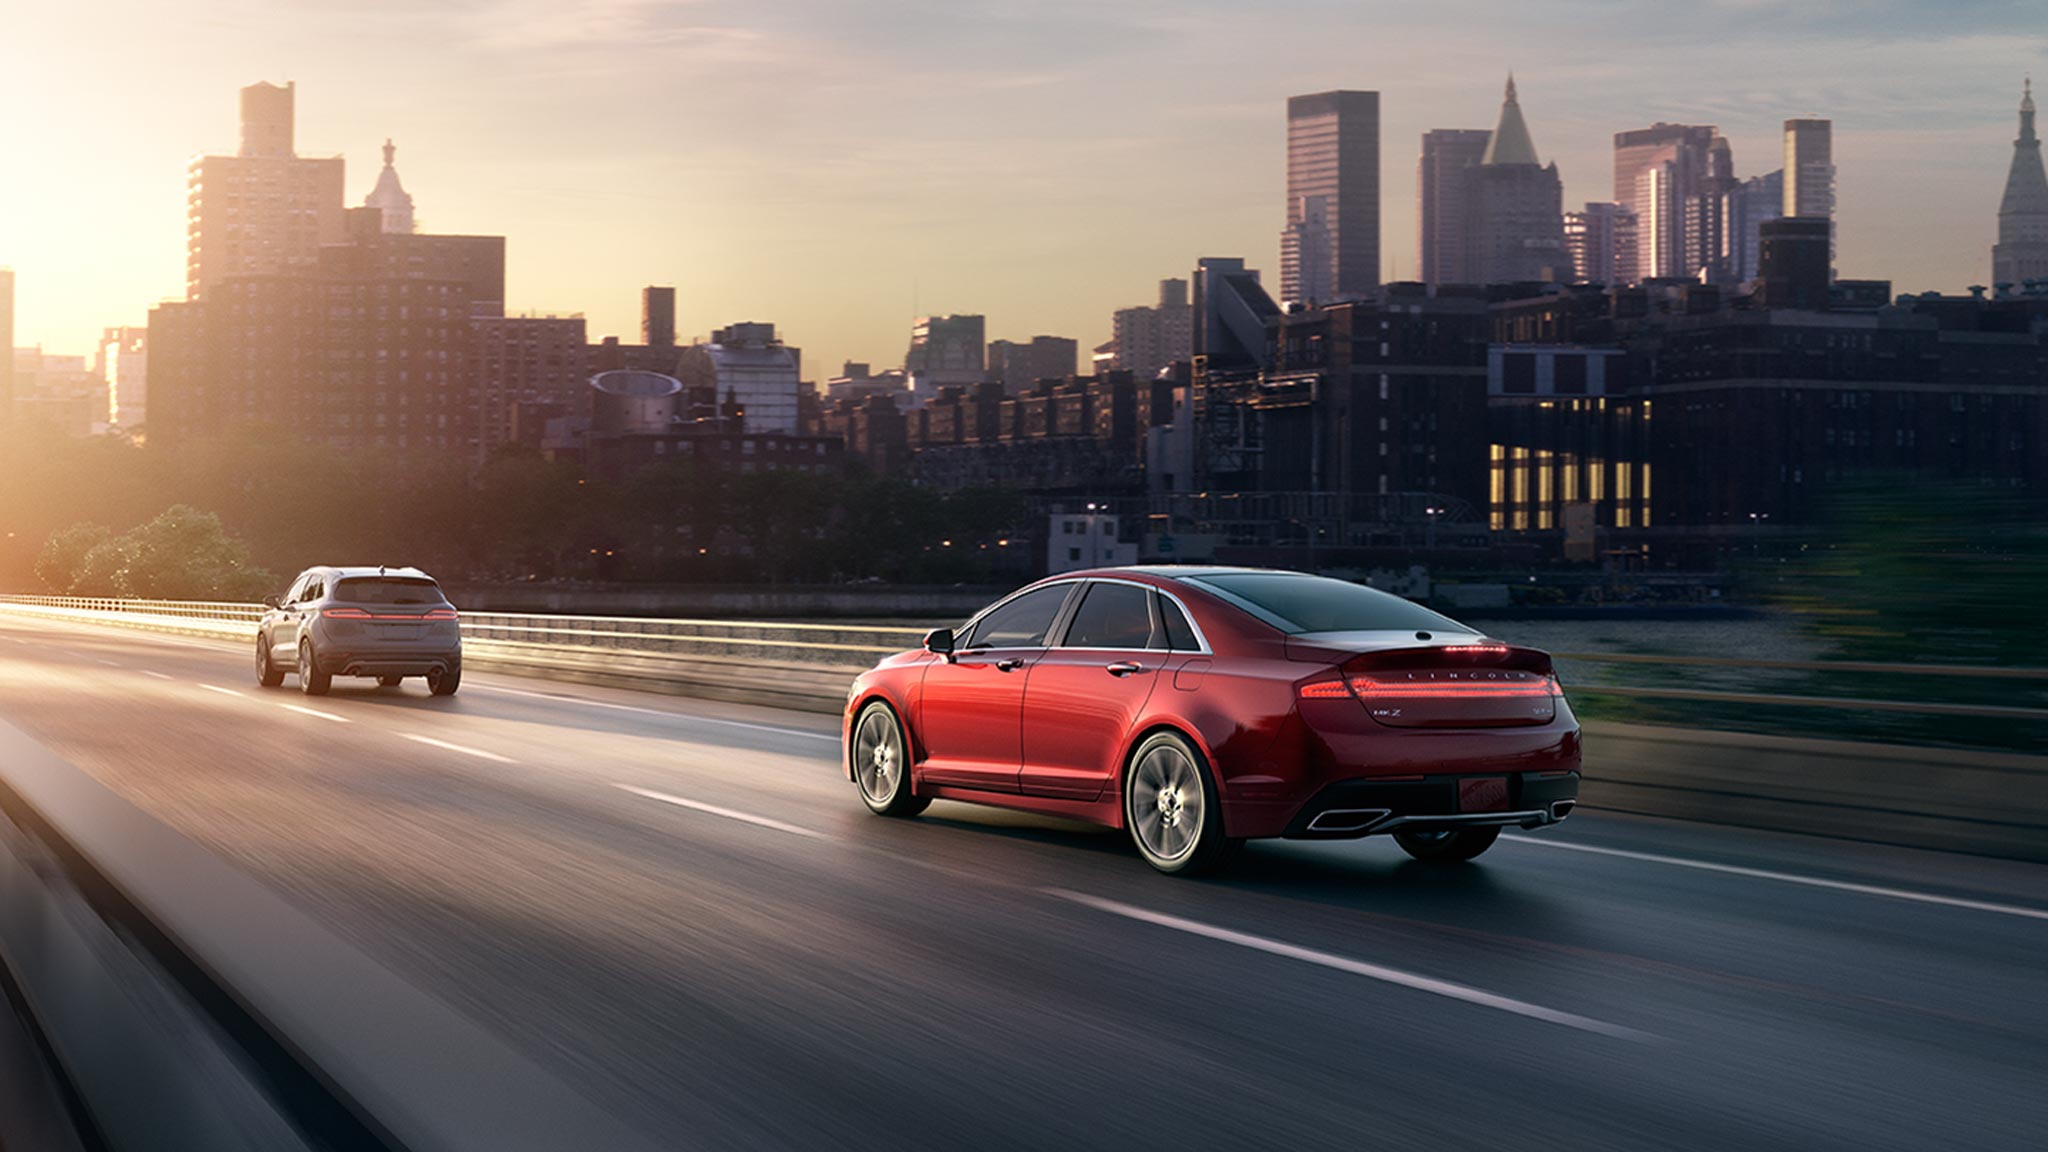 New Lincoln MKZ Exterior image 2